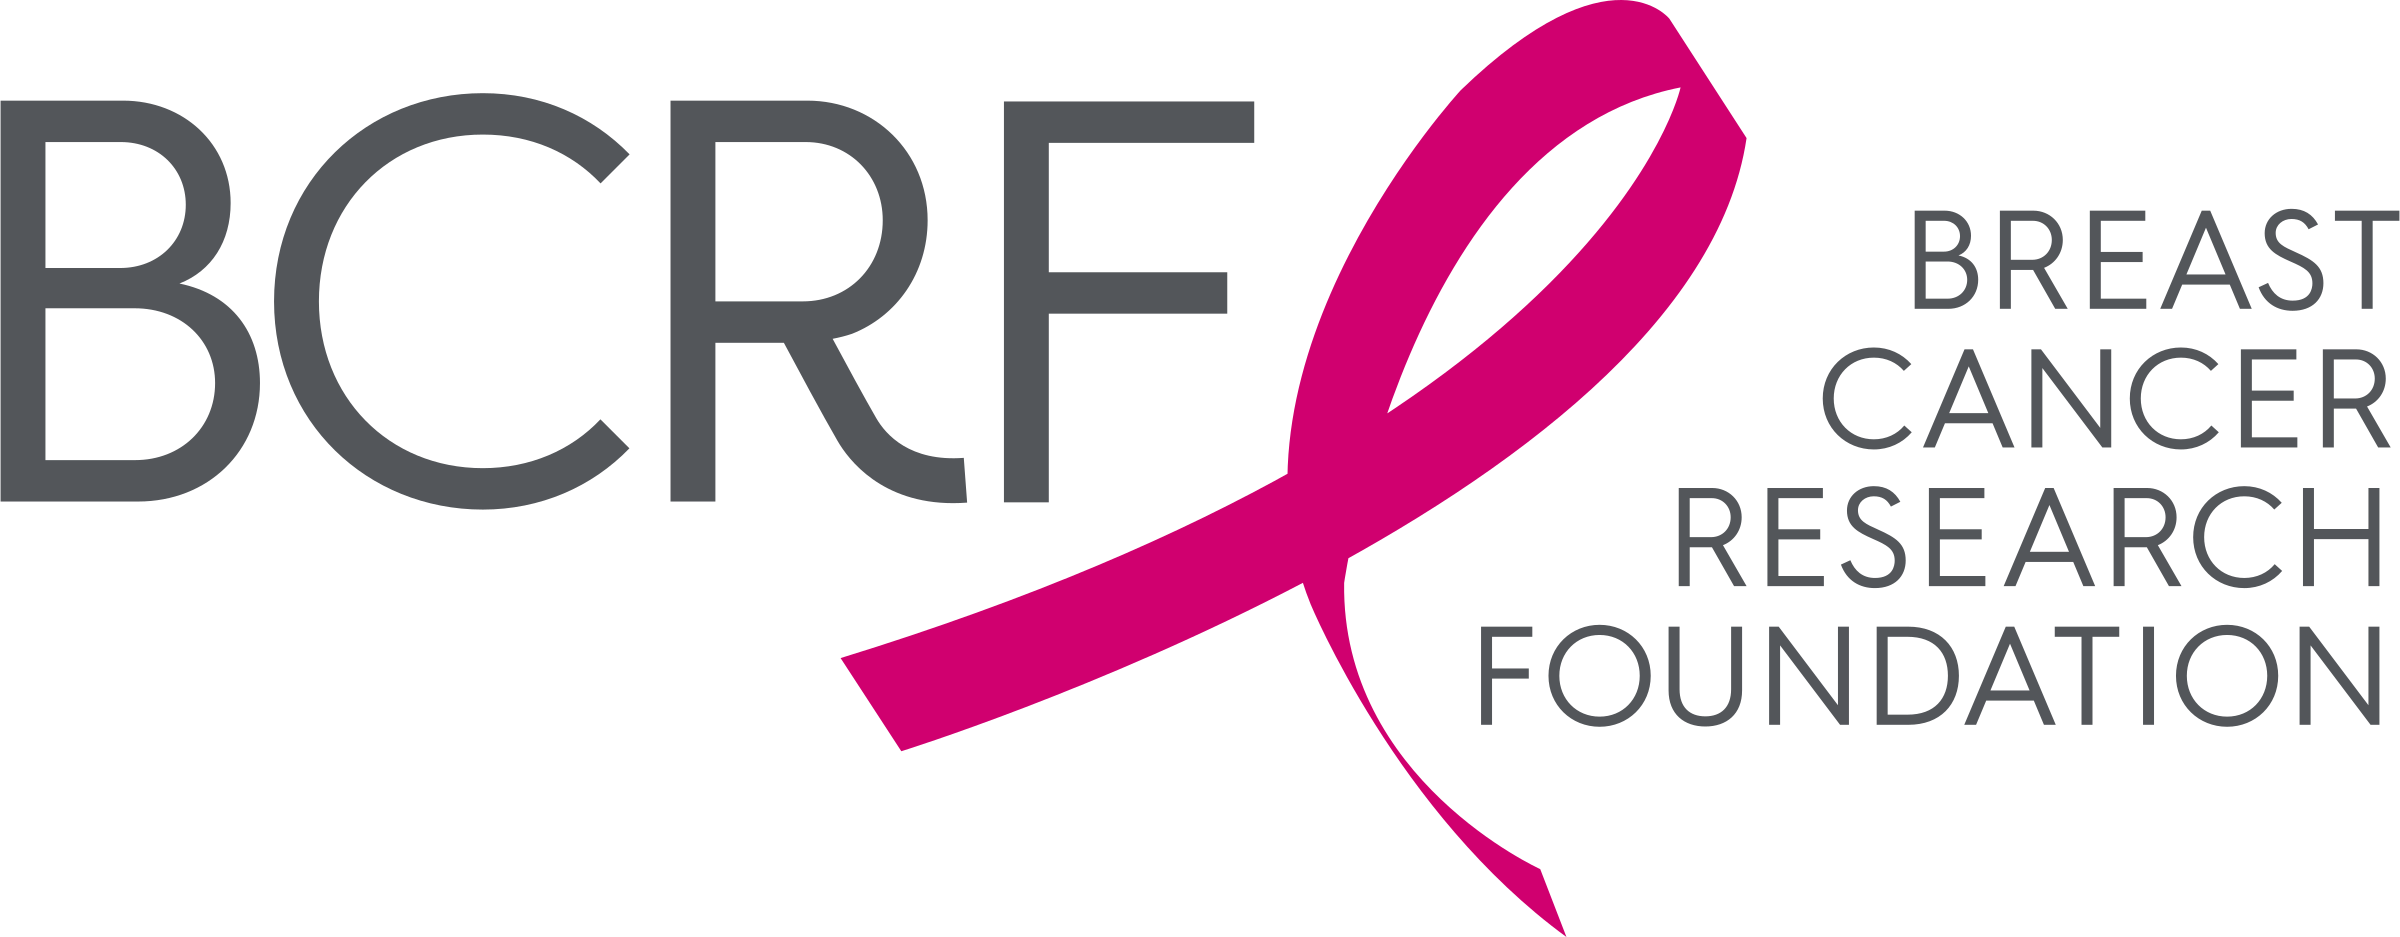 Breast Cancer Research Foundation Logo PNG Transparent ...